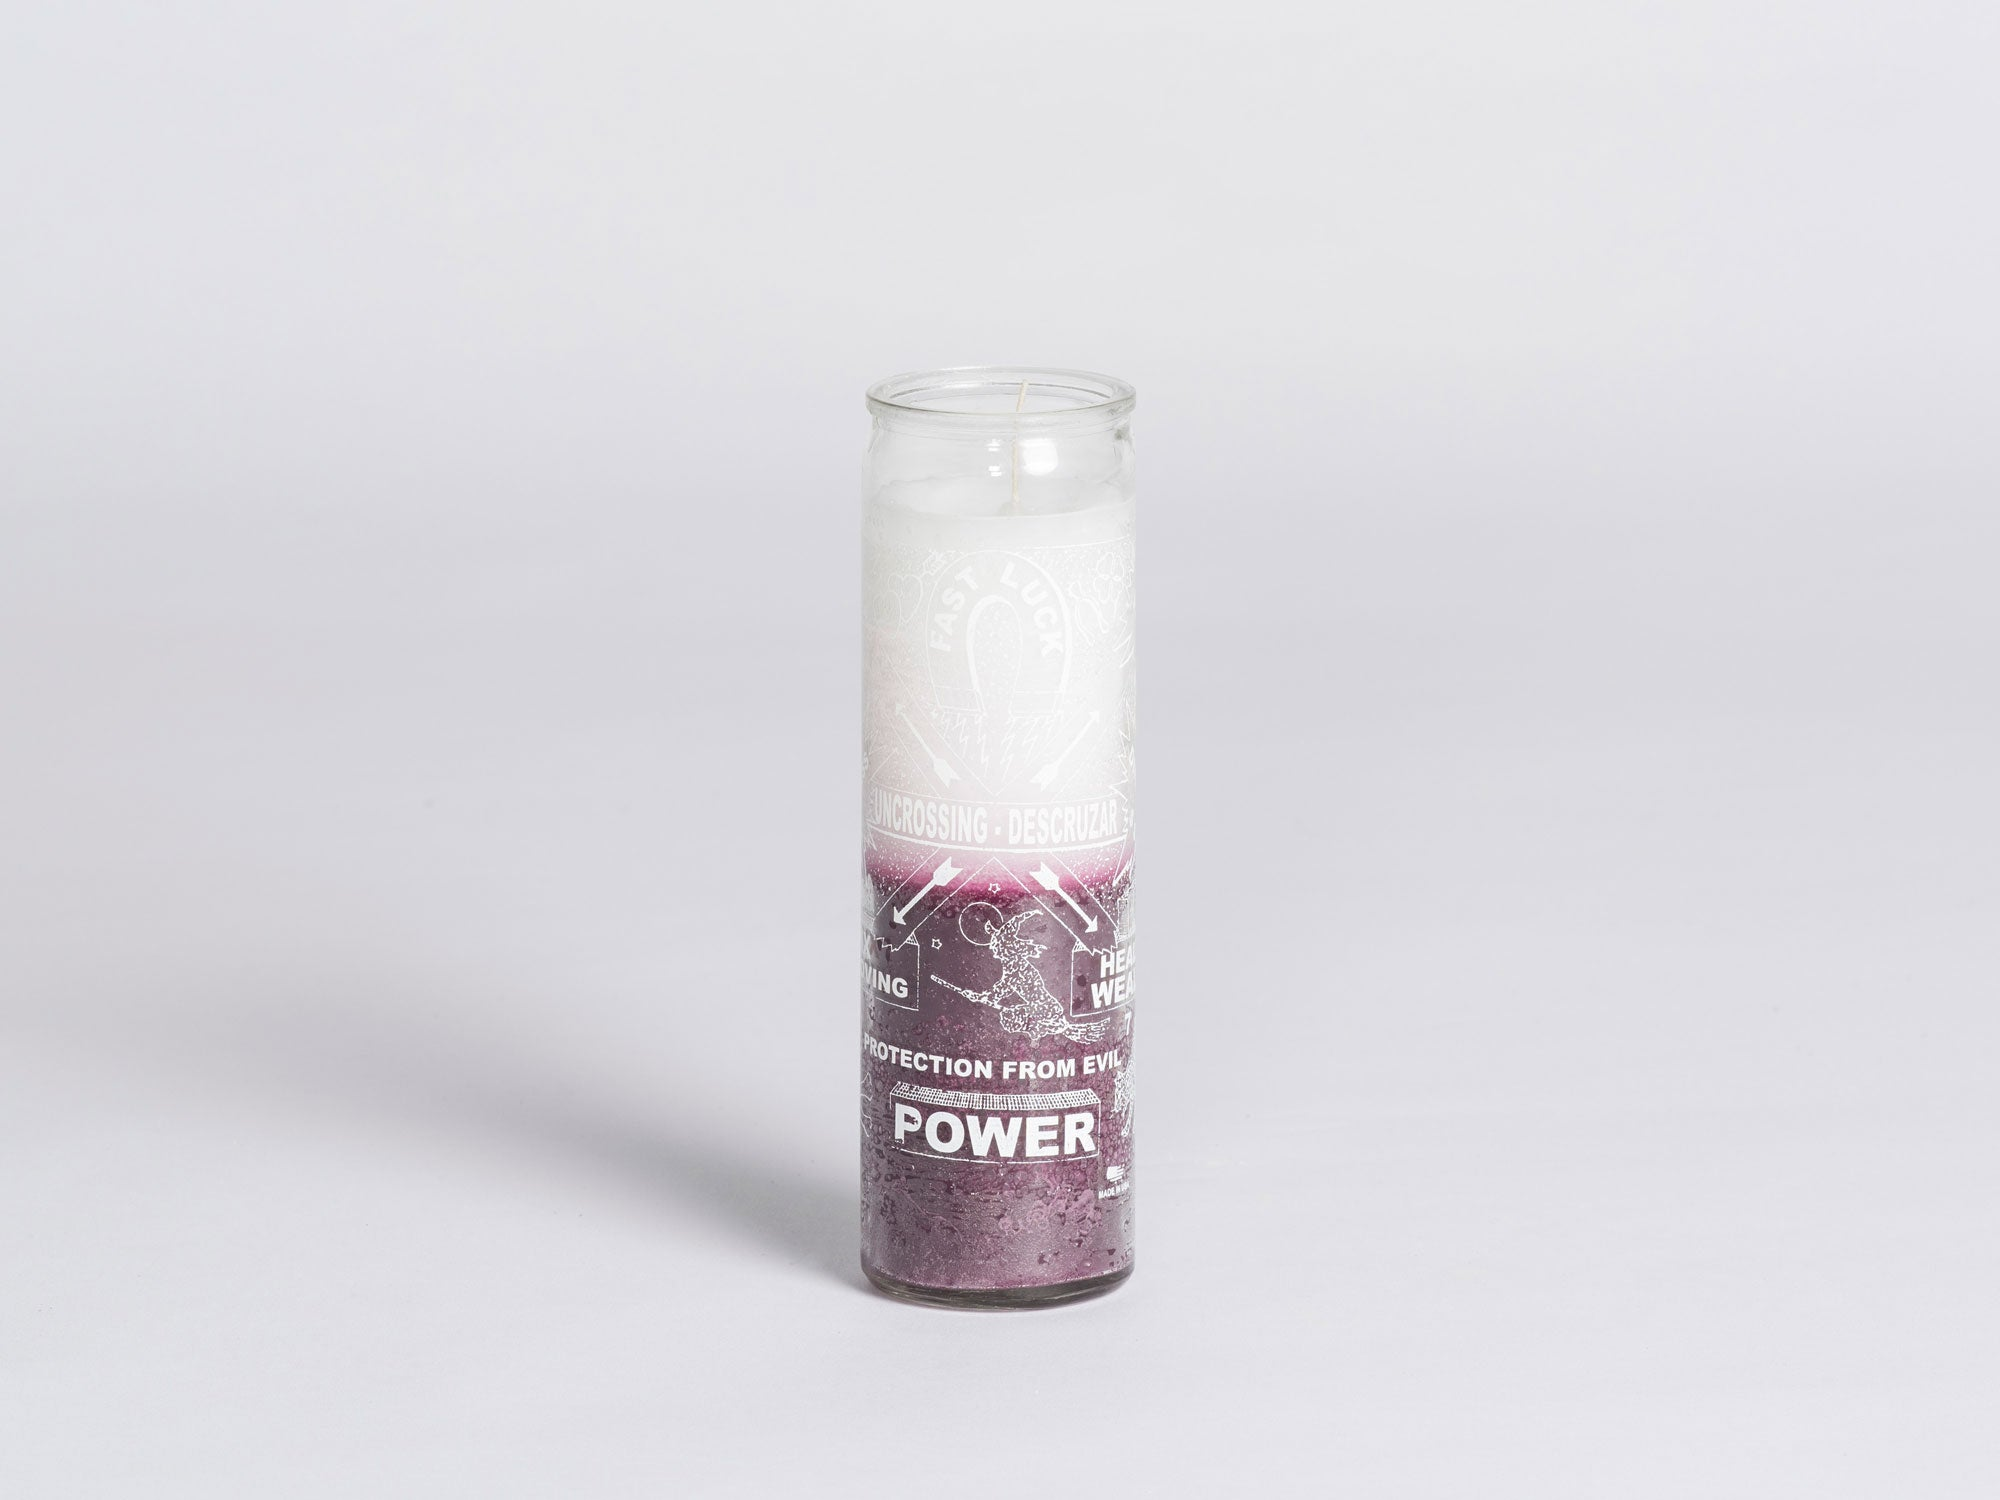 W PICO MIRACLE CANDLE - Uncrossing (Purple / White)